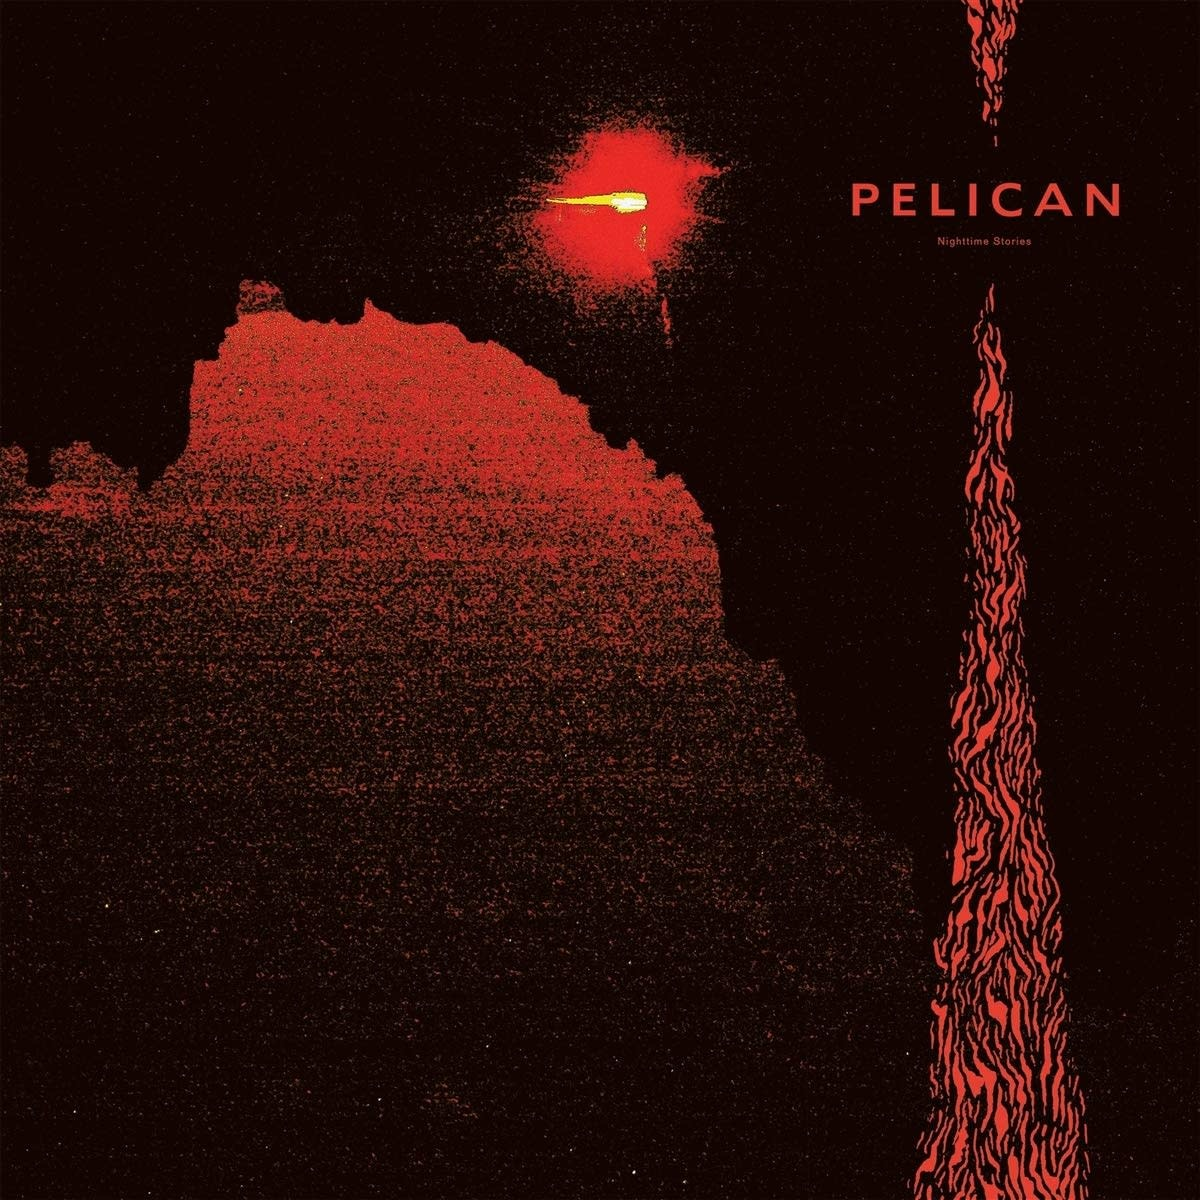 Pelican ‎– Nighttime Stories